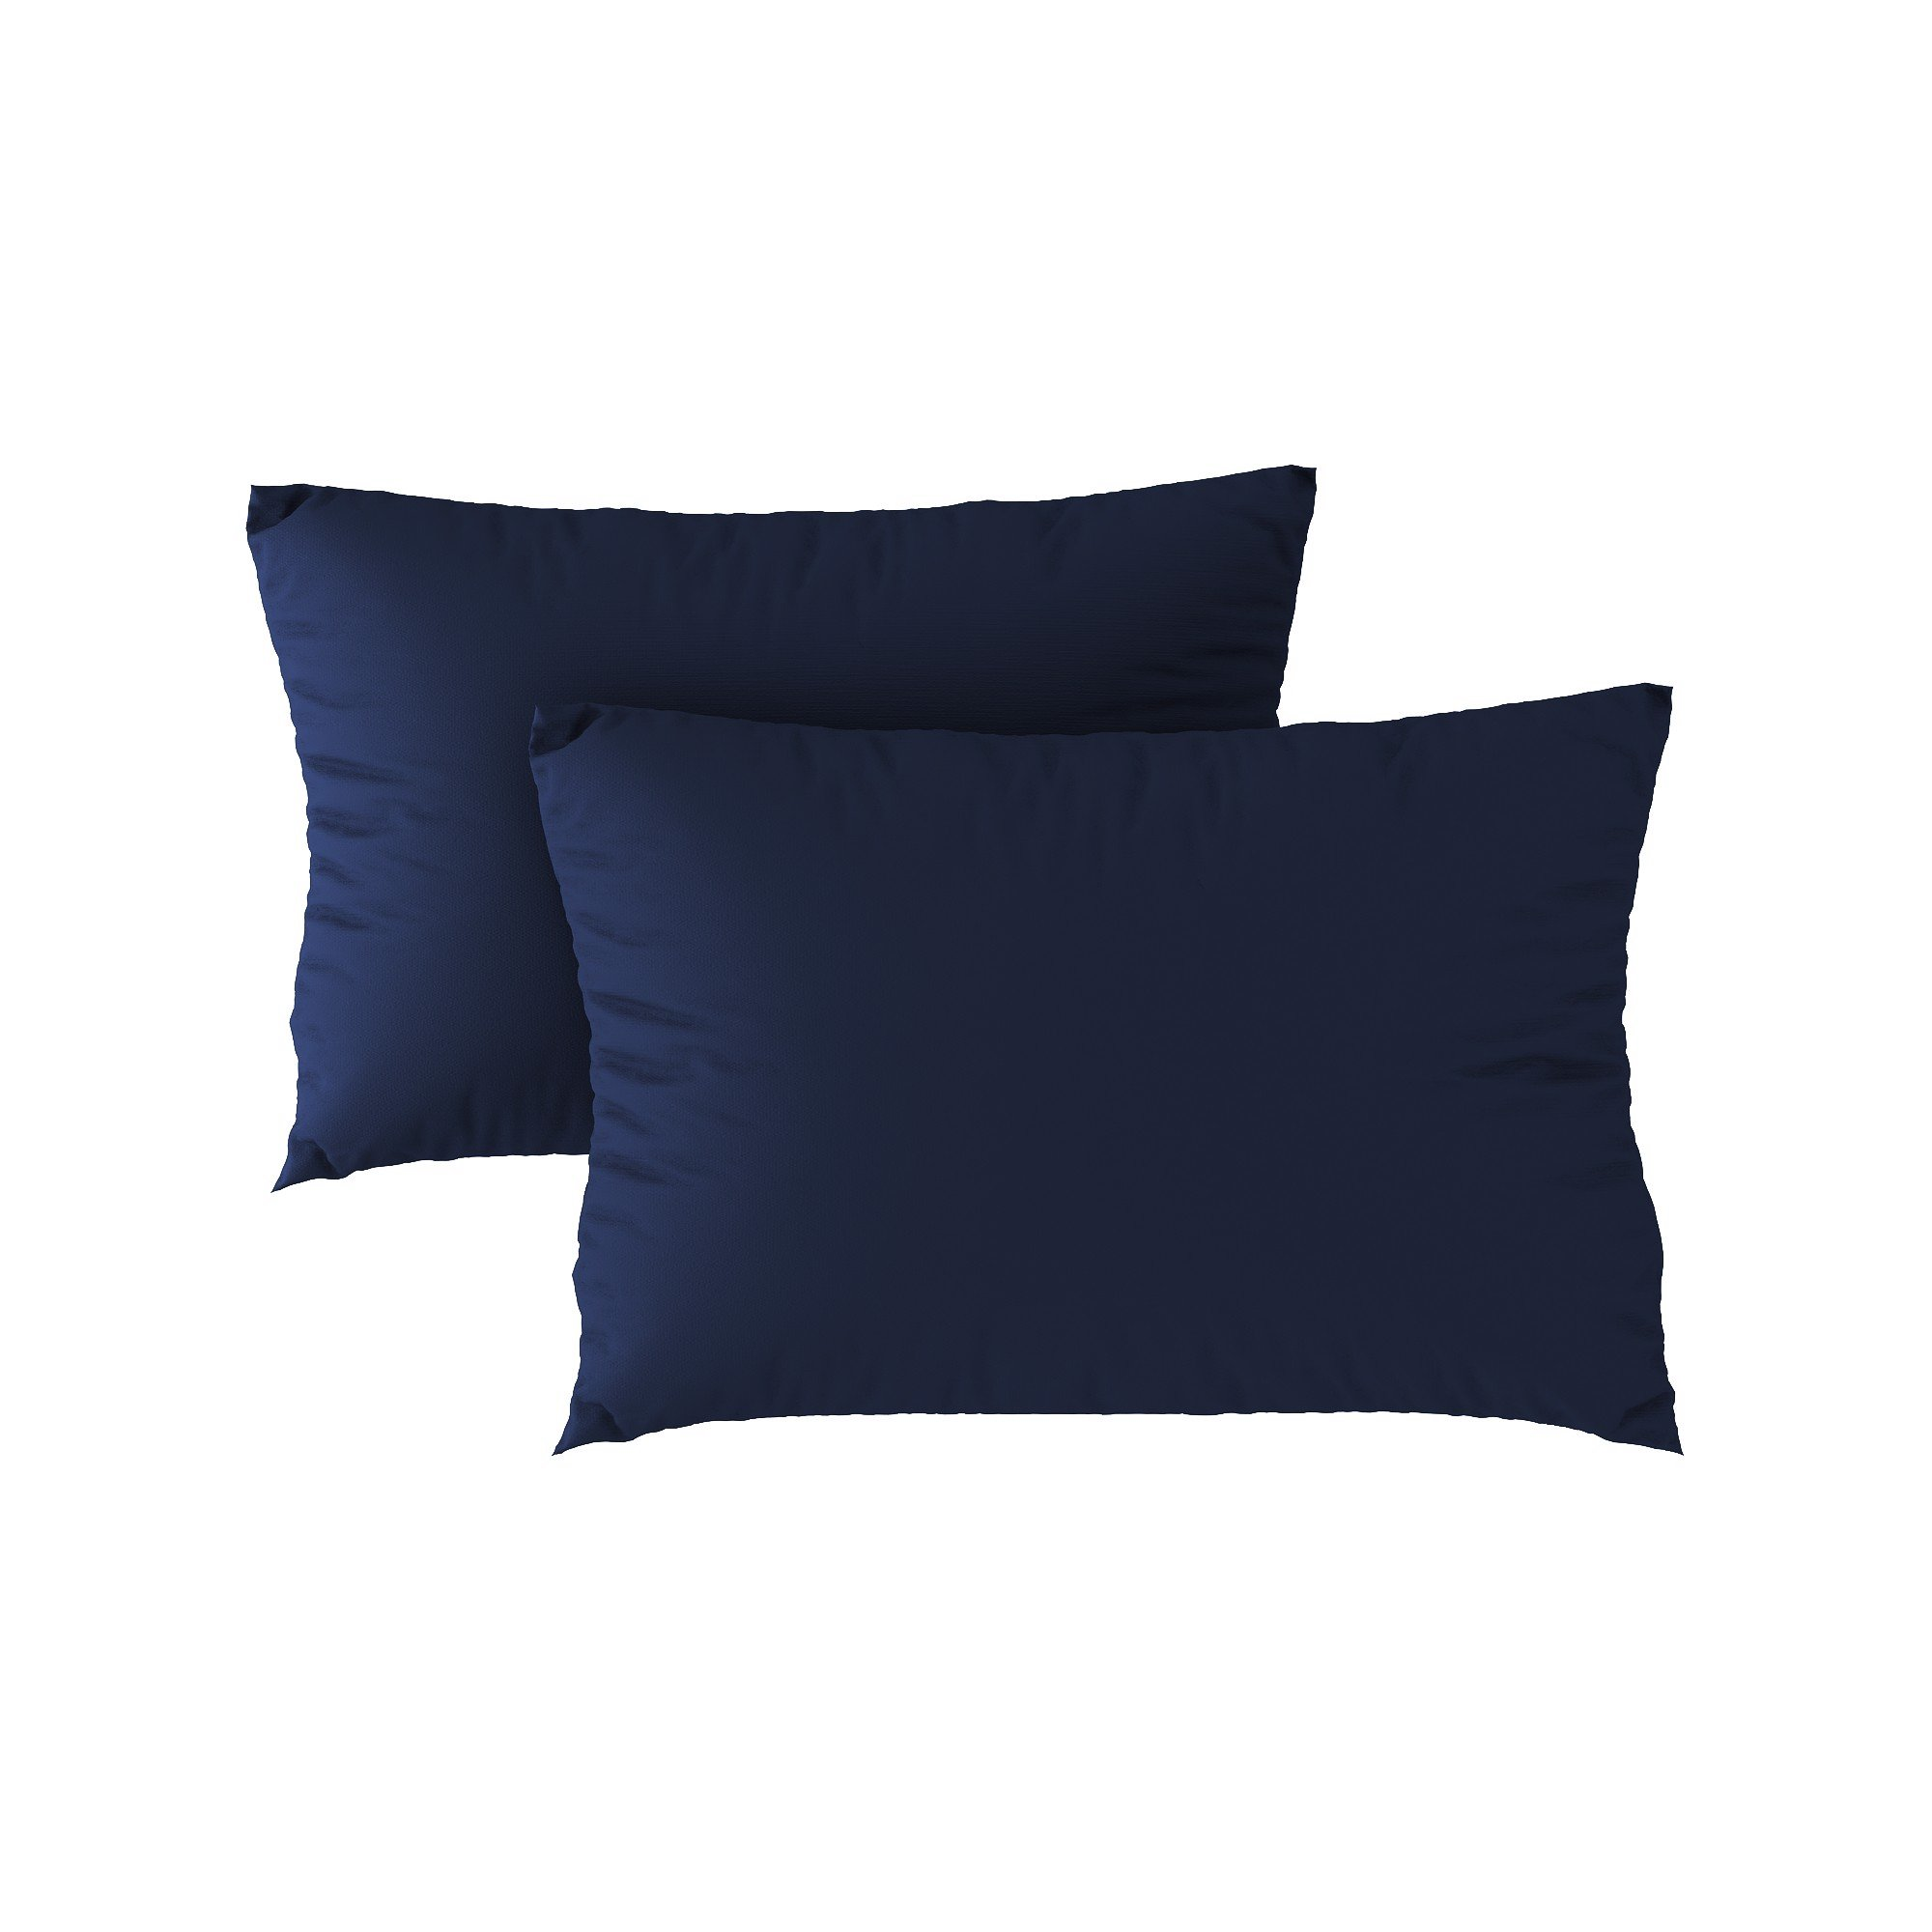 Standard pillow case 22 Navy blue (2pcs)